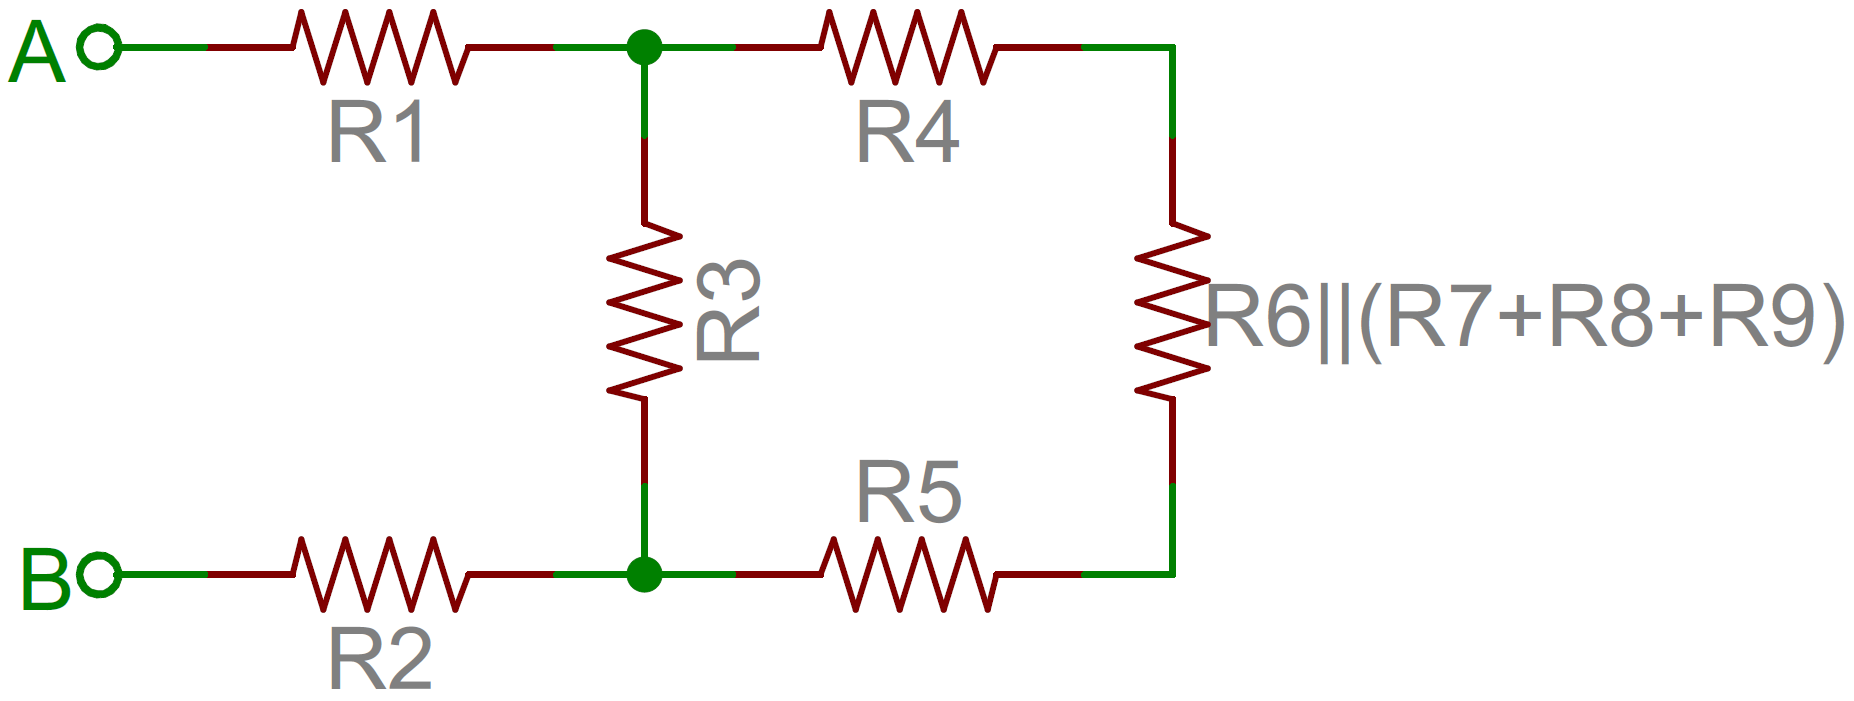 Resistors Circuit And Determines The State Of By Comparing Making Our Resistor Network Simplified